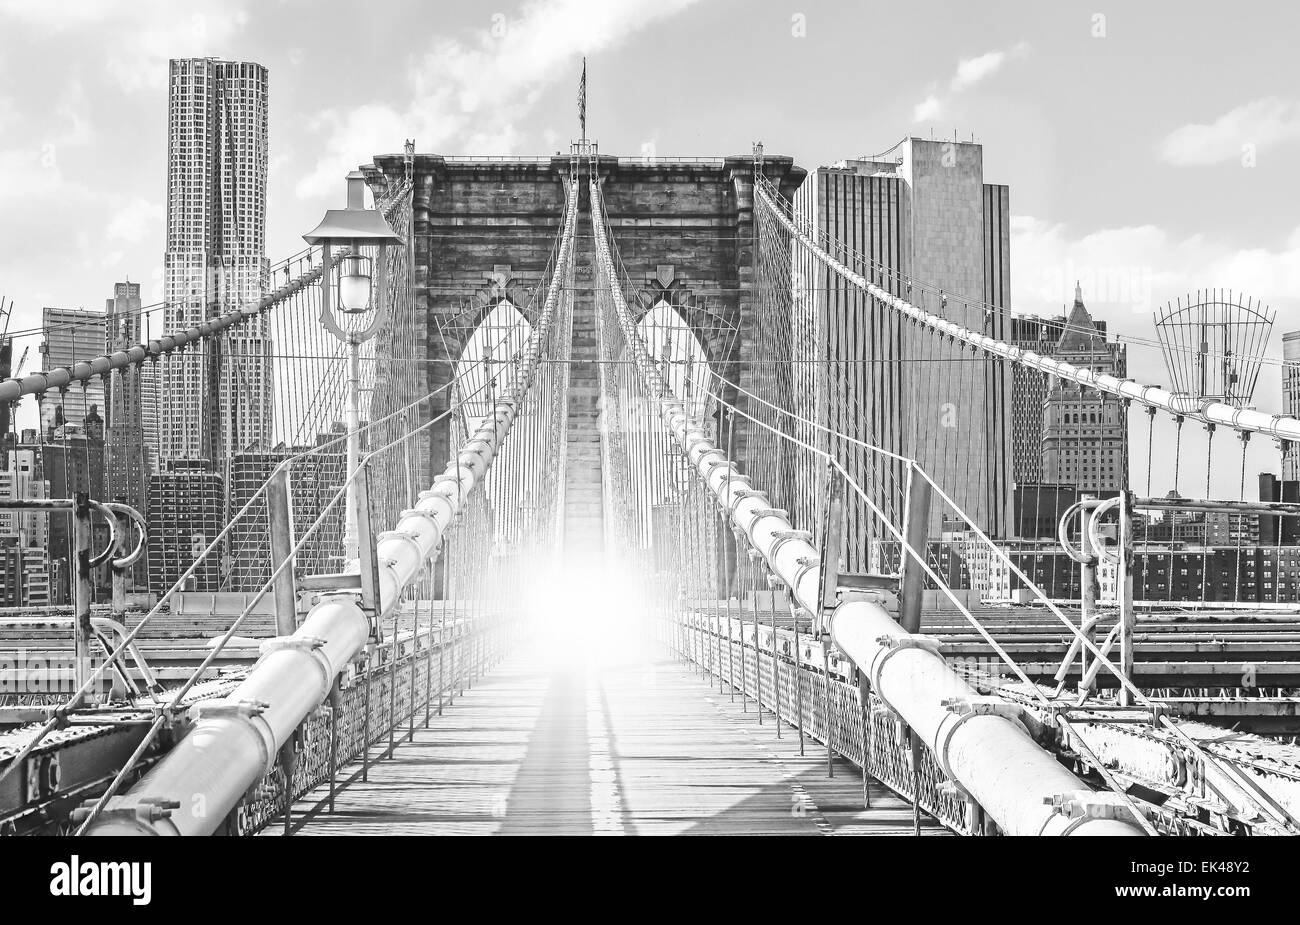 Brooklyn Bridge in New York City, old black and white film style, USA. - Stock Image